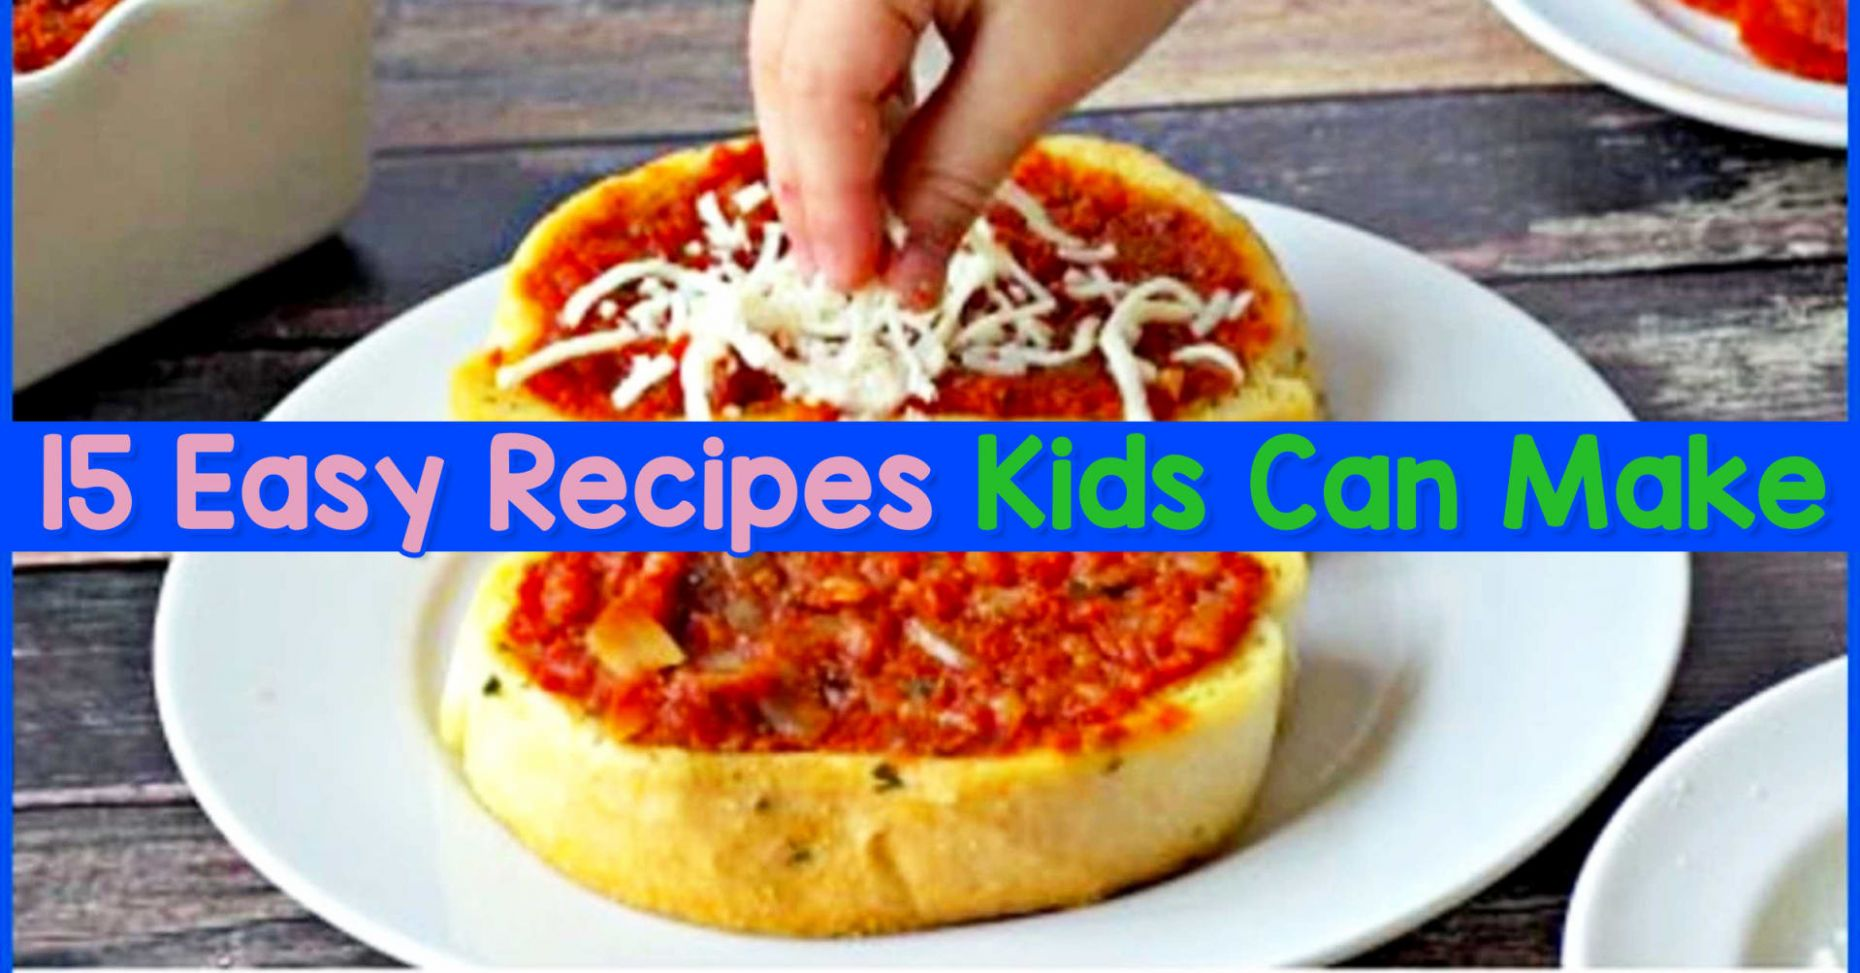 8 Fun & Easy Recipes for Kids To Make - Clever DIY Ideas